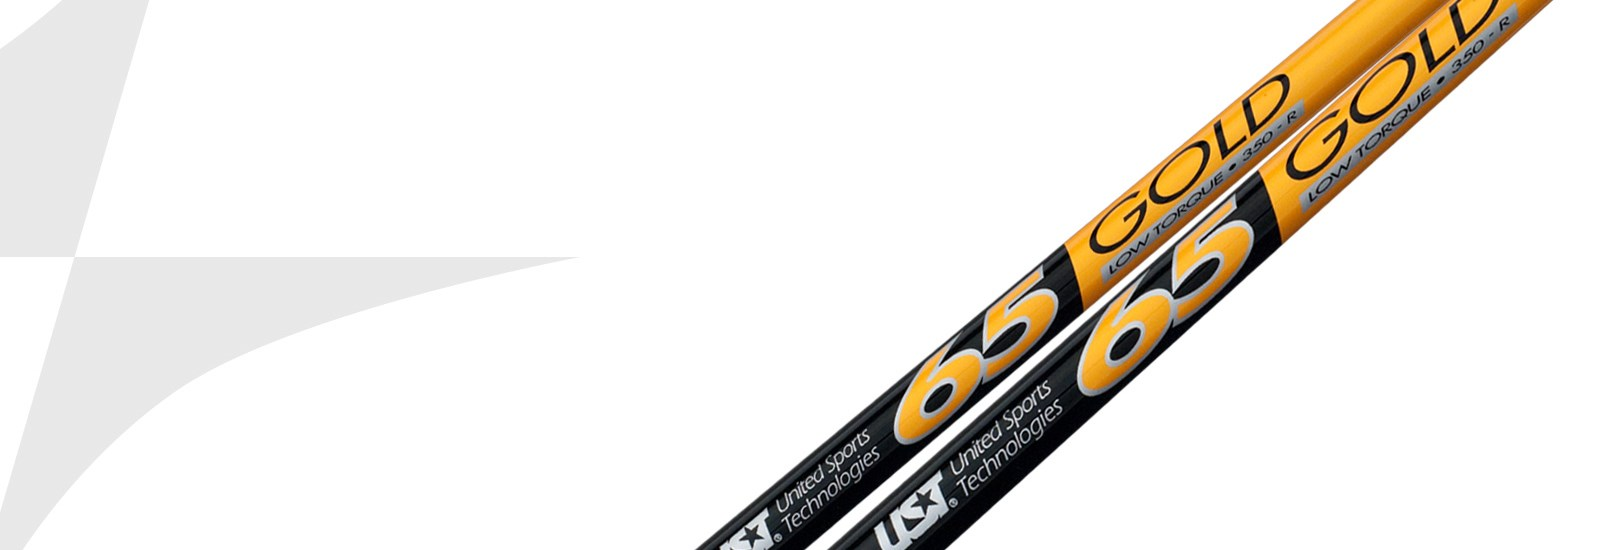 Gold Series Wood Shafts